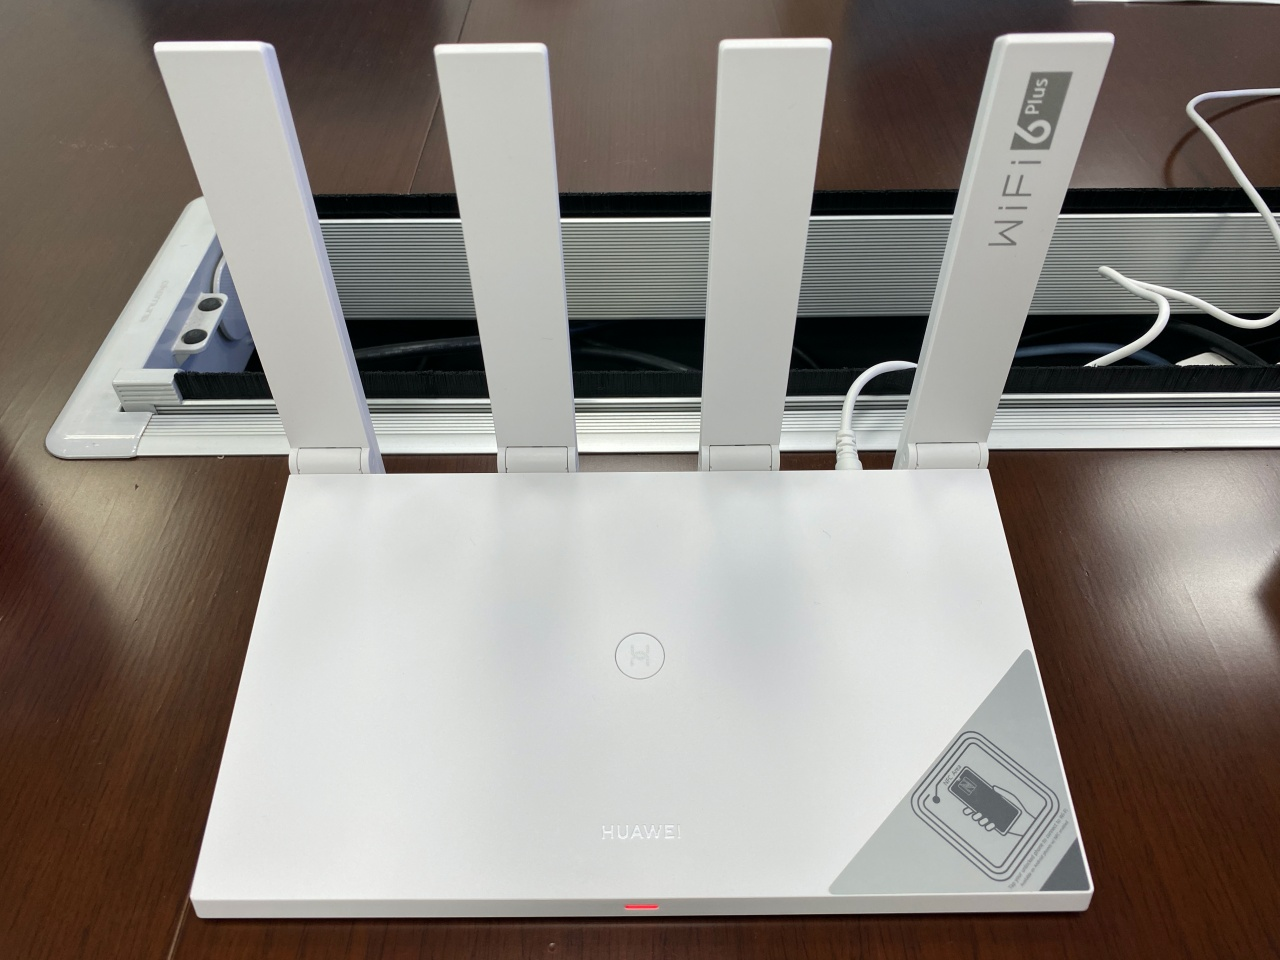 Networking/ Routers cover image